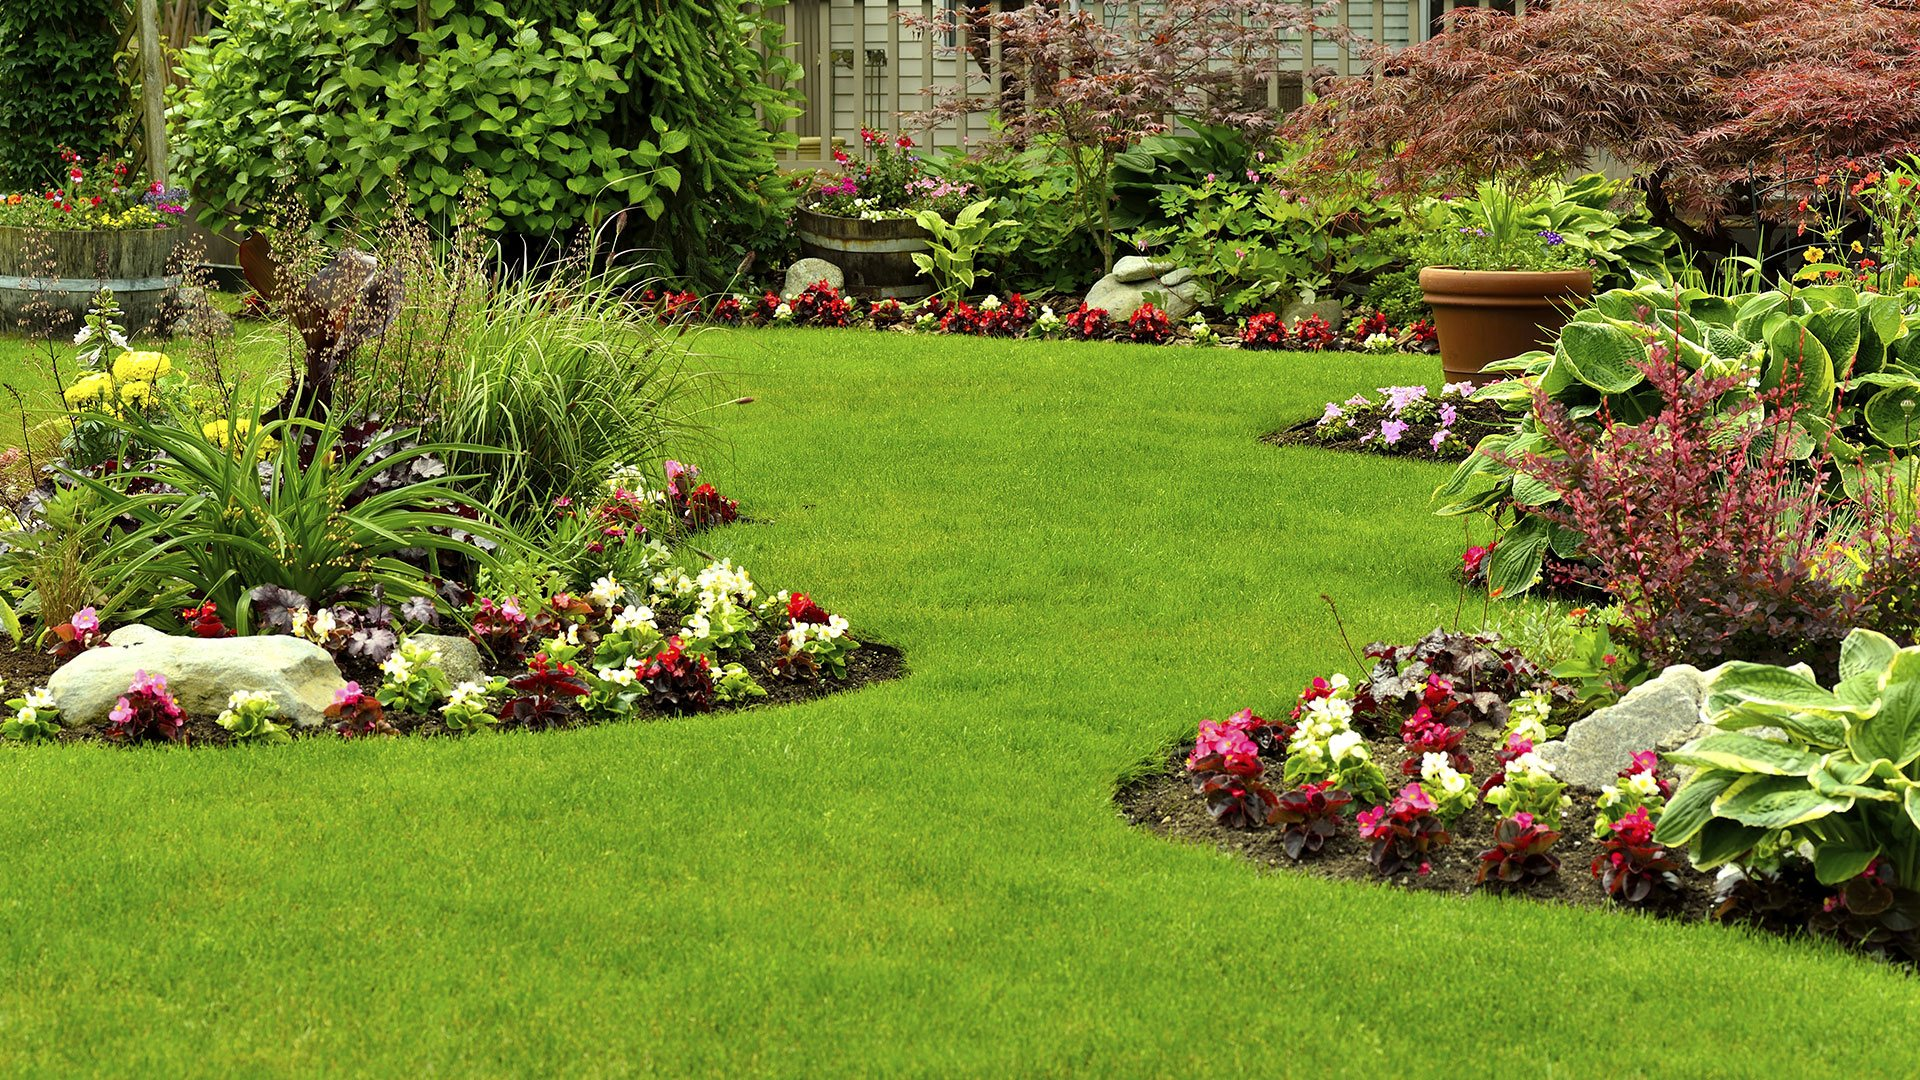 HD Image Landscaping